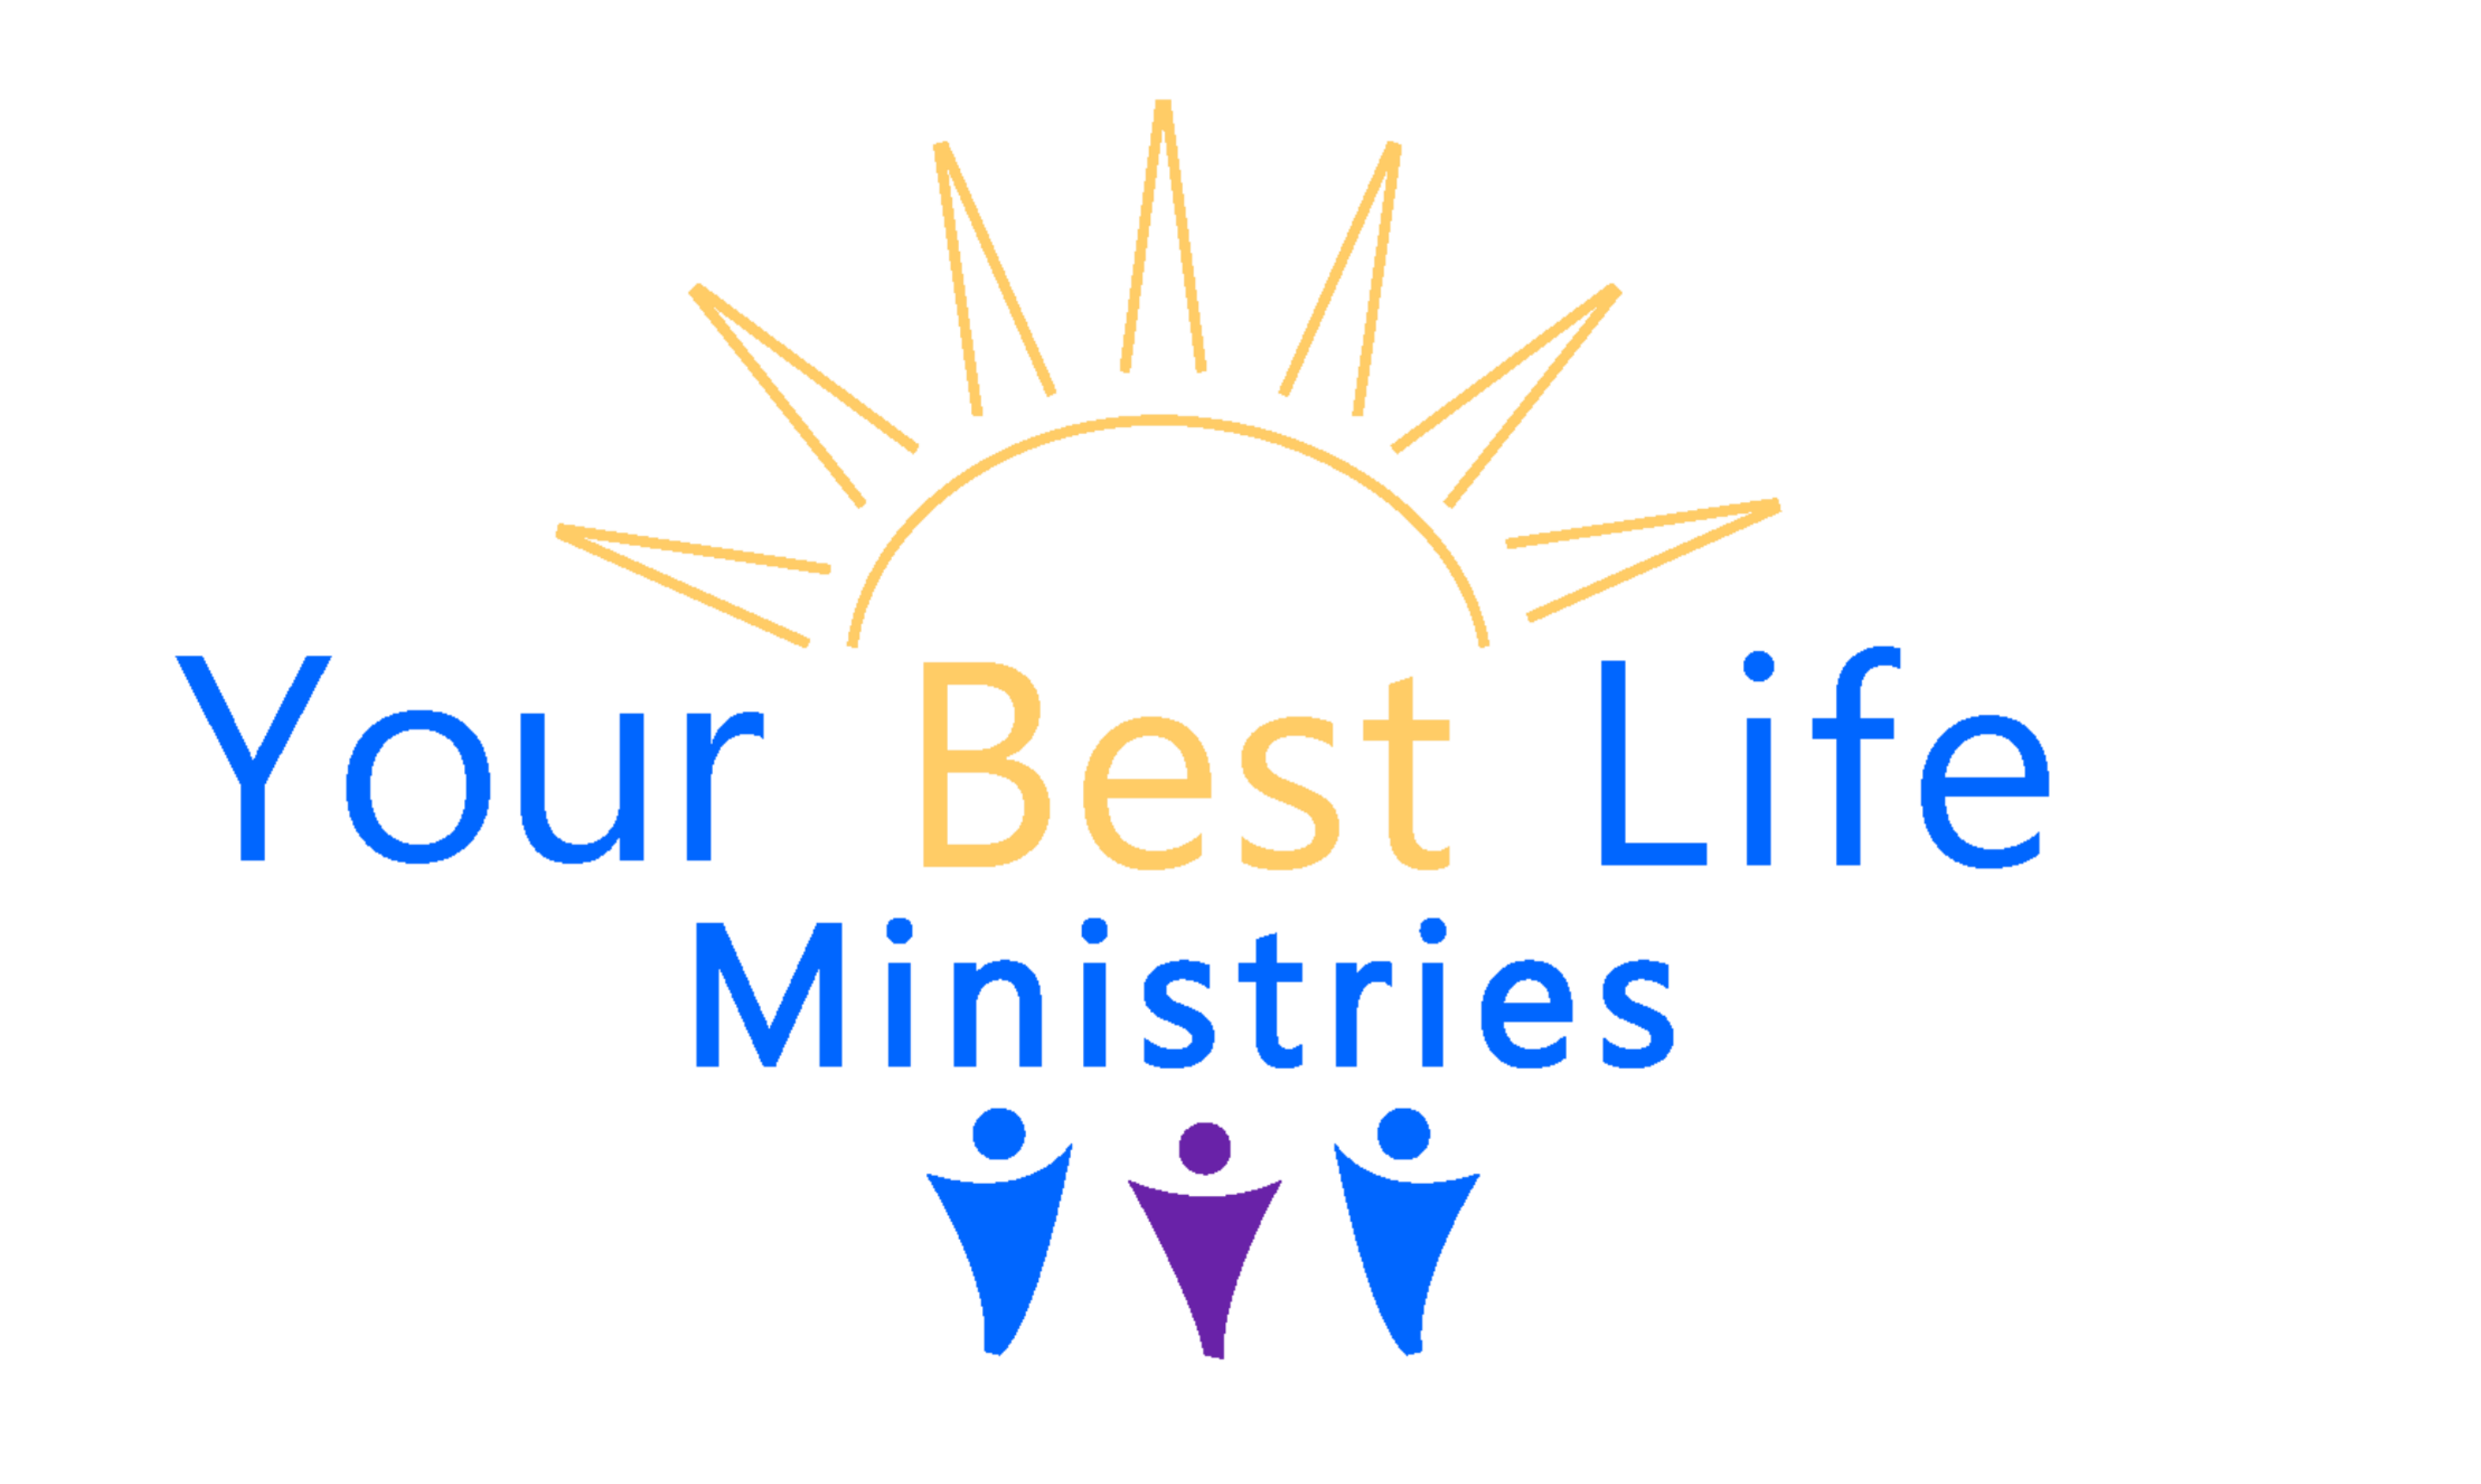 Your Best Life Ministries